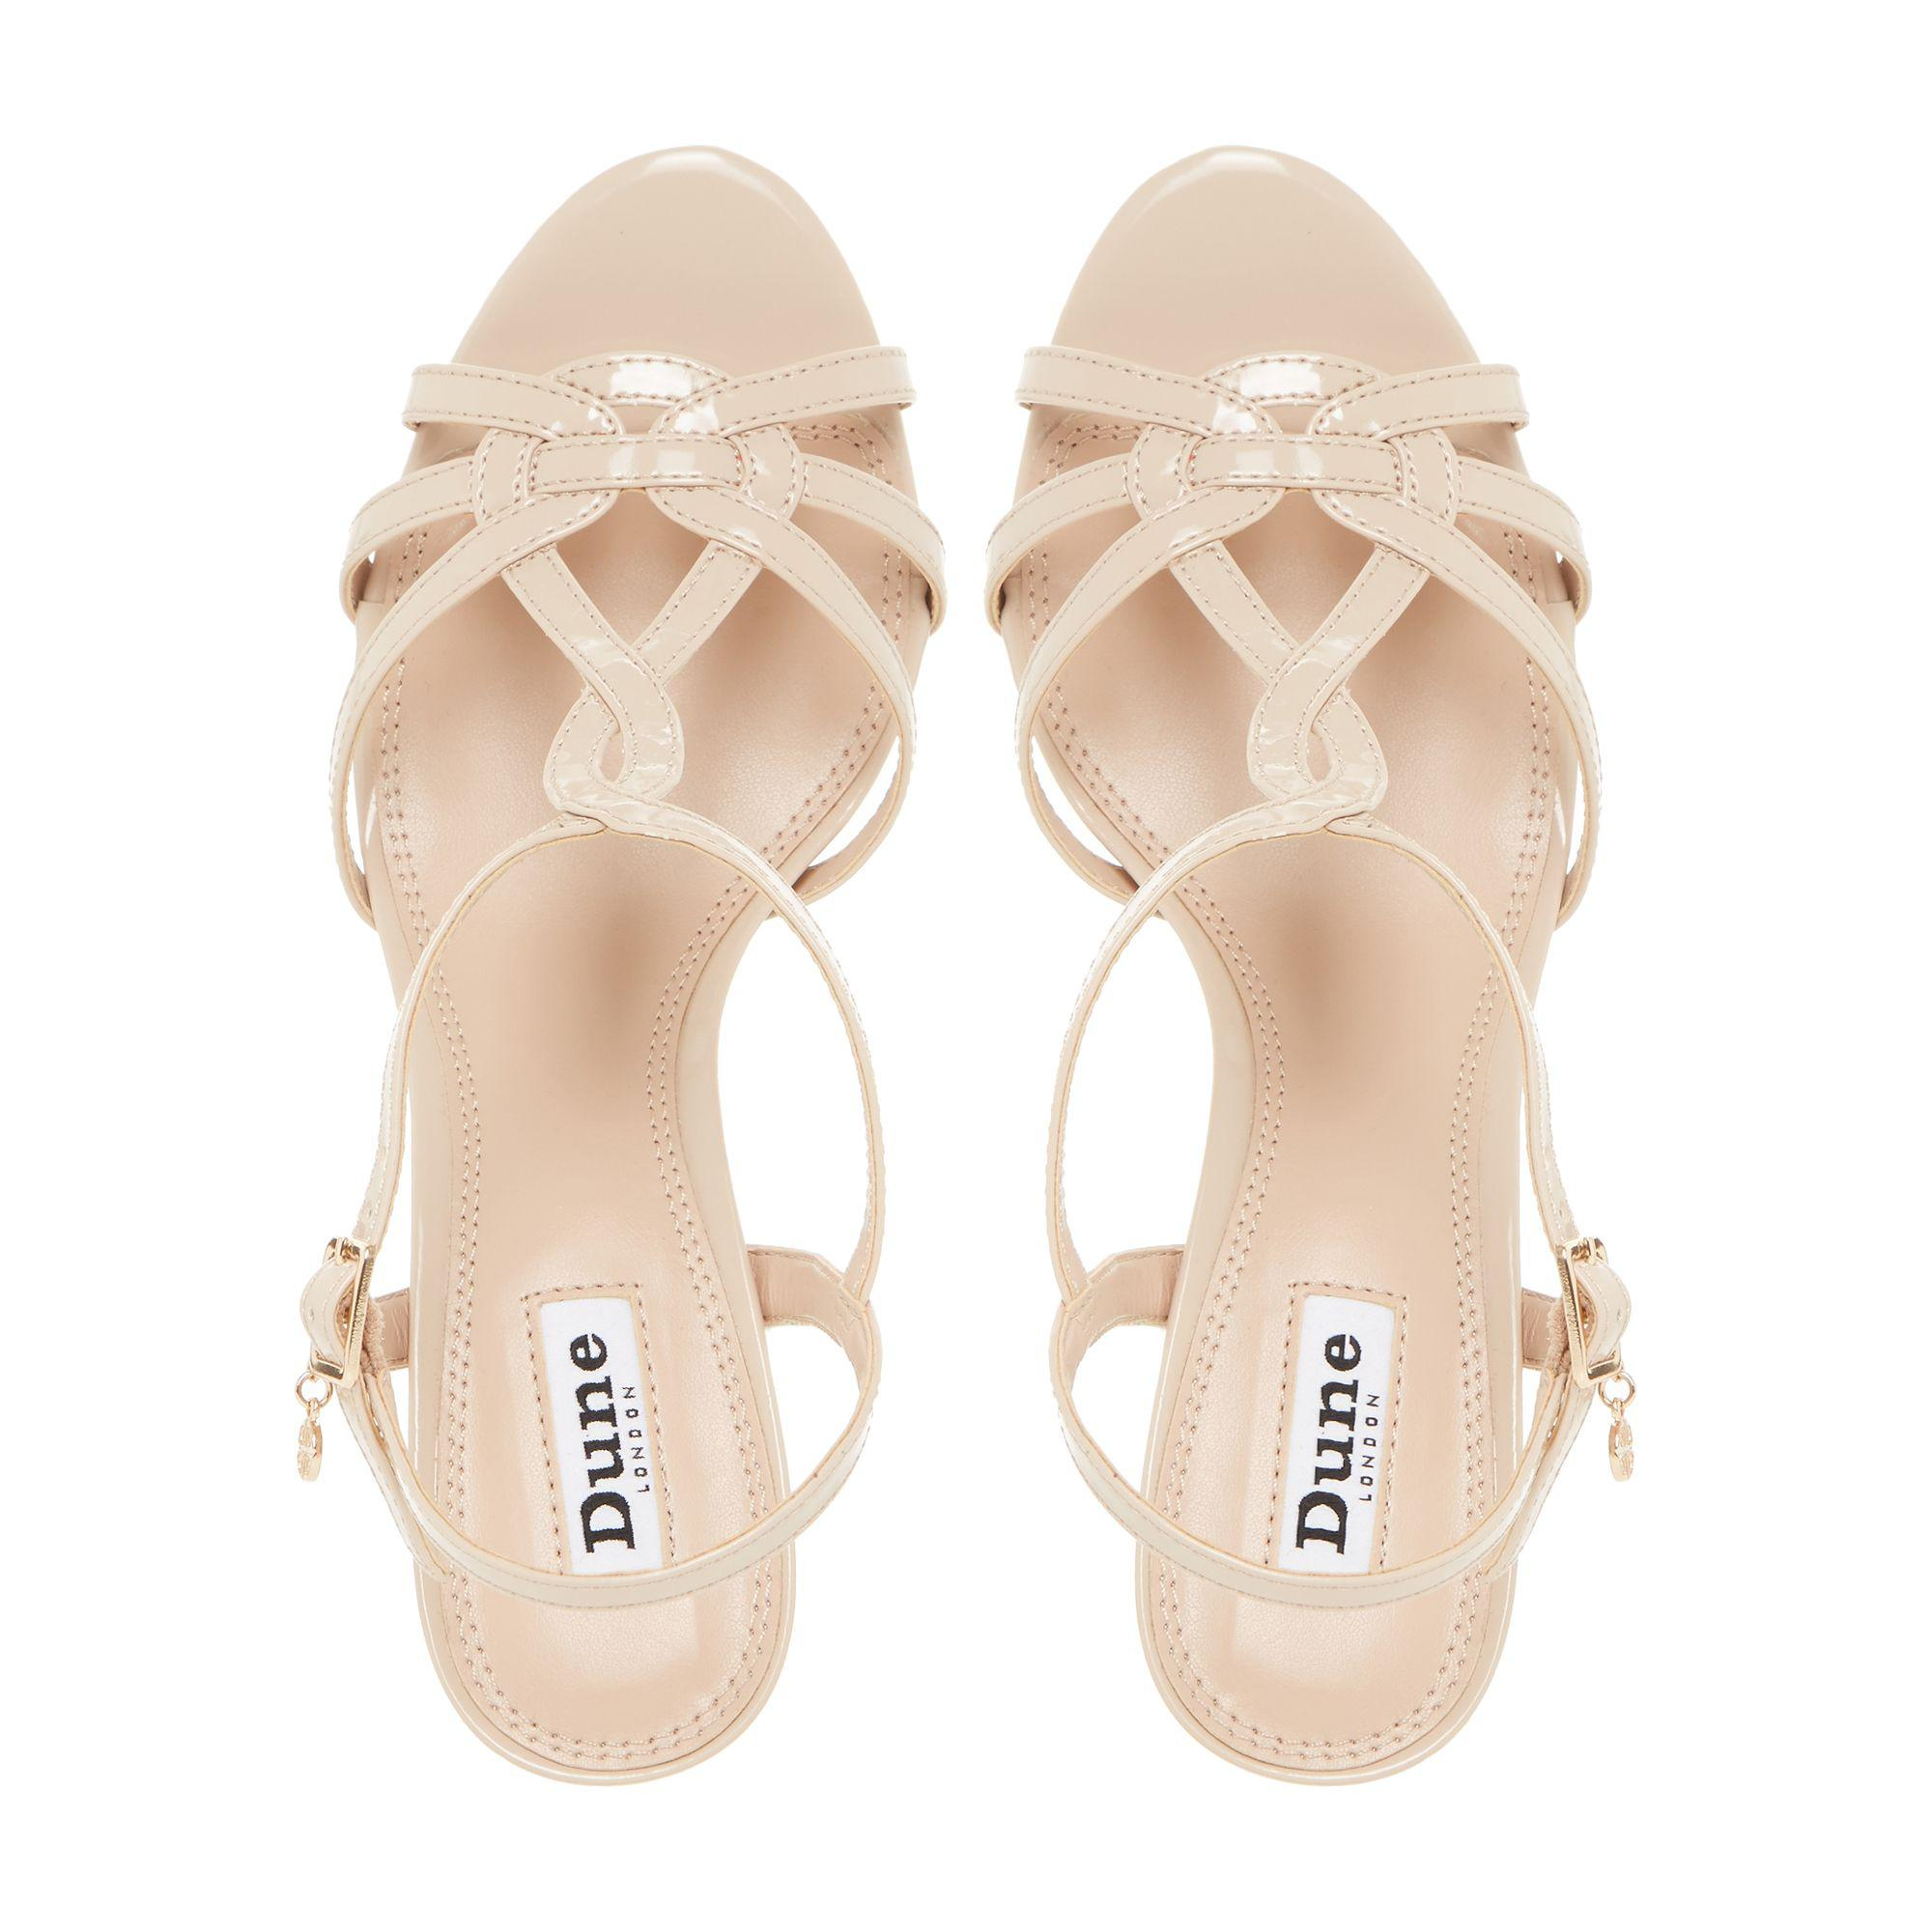 98b6940142060 Dune Natural 'miniee' Strappy Mid Heel Sandals in Natural - Lyst